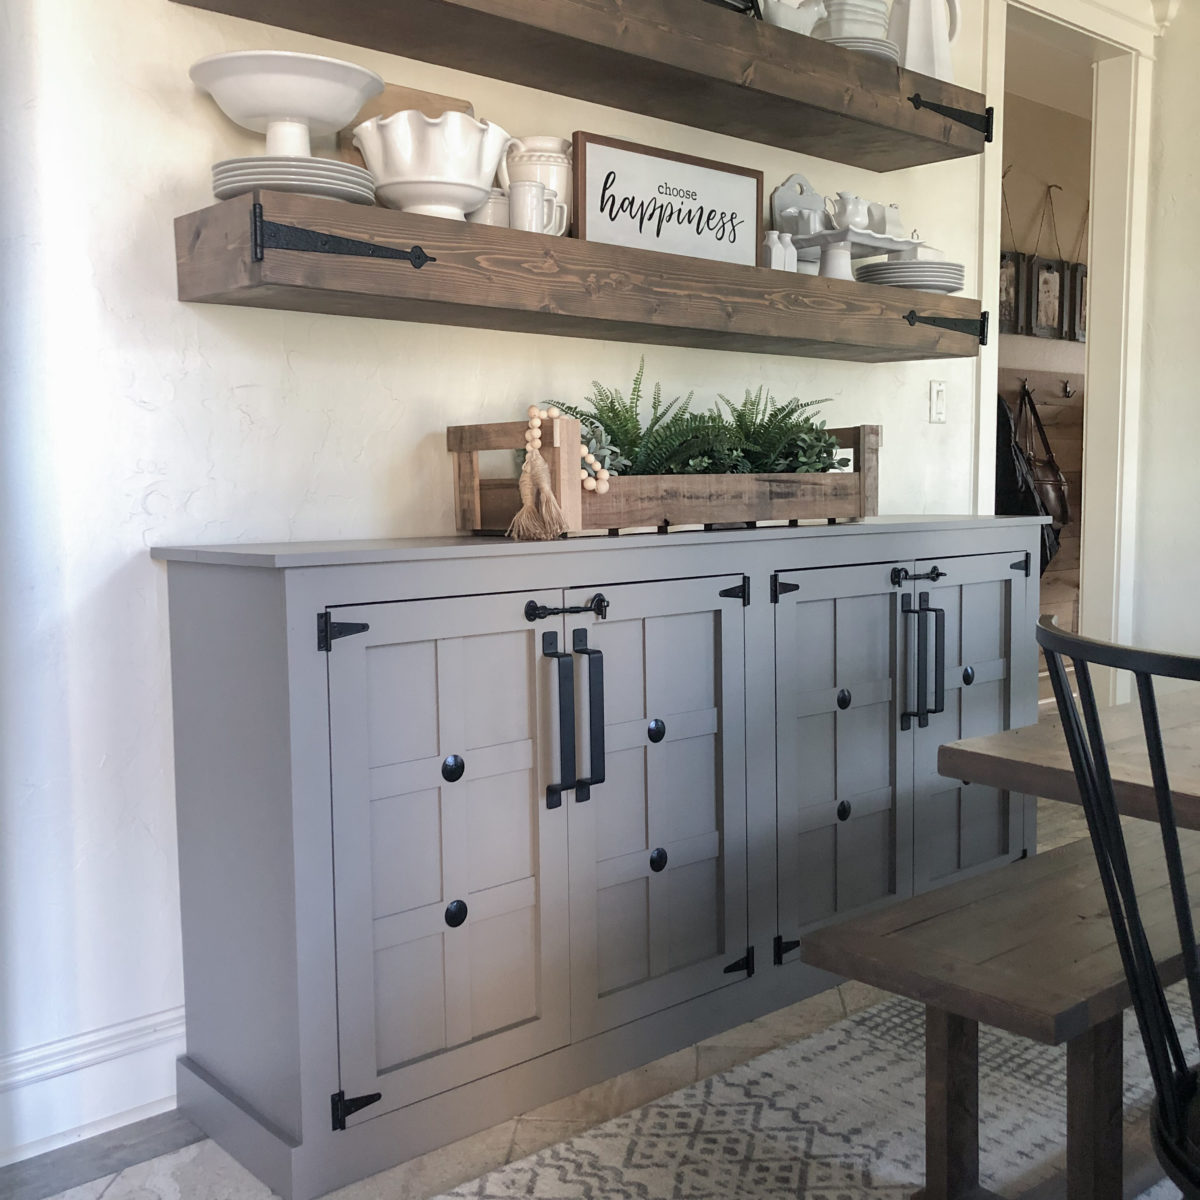 DIY Modern Farmhouse Cabinet